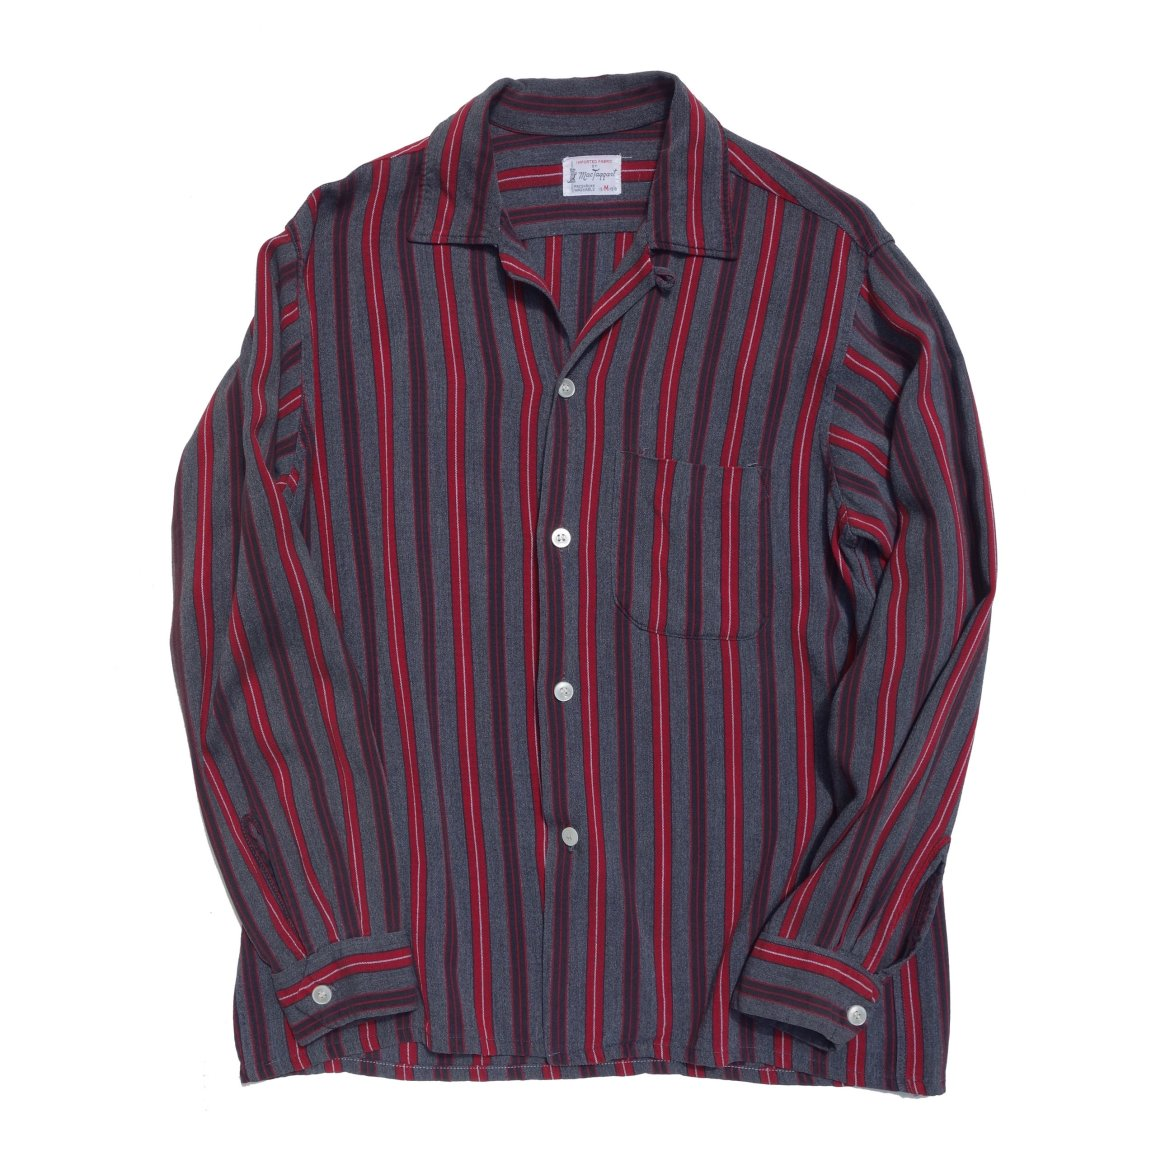 New Arrivals Vintage Rayon Shirts